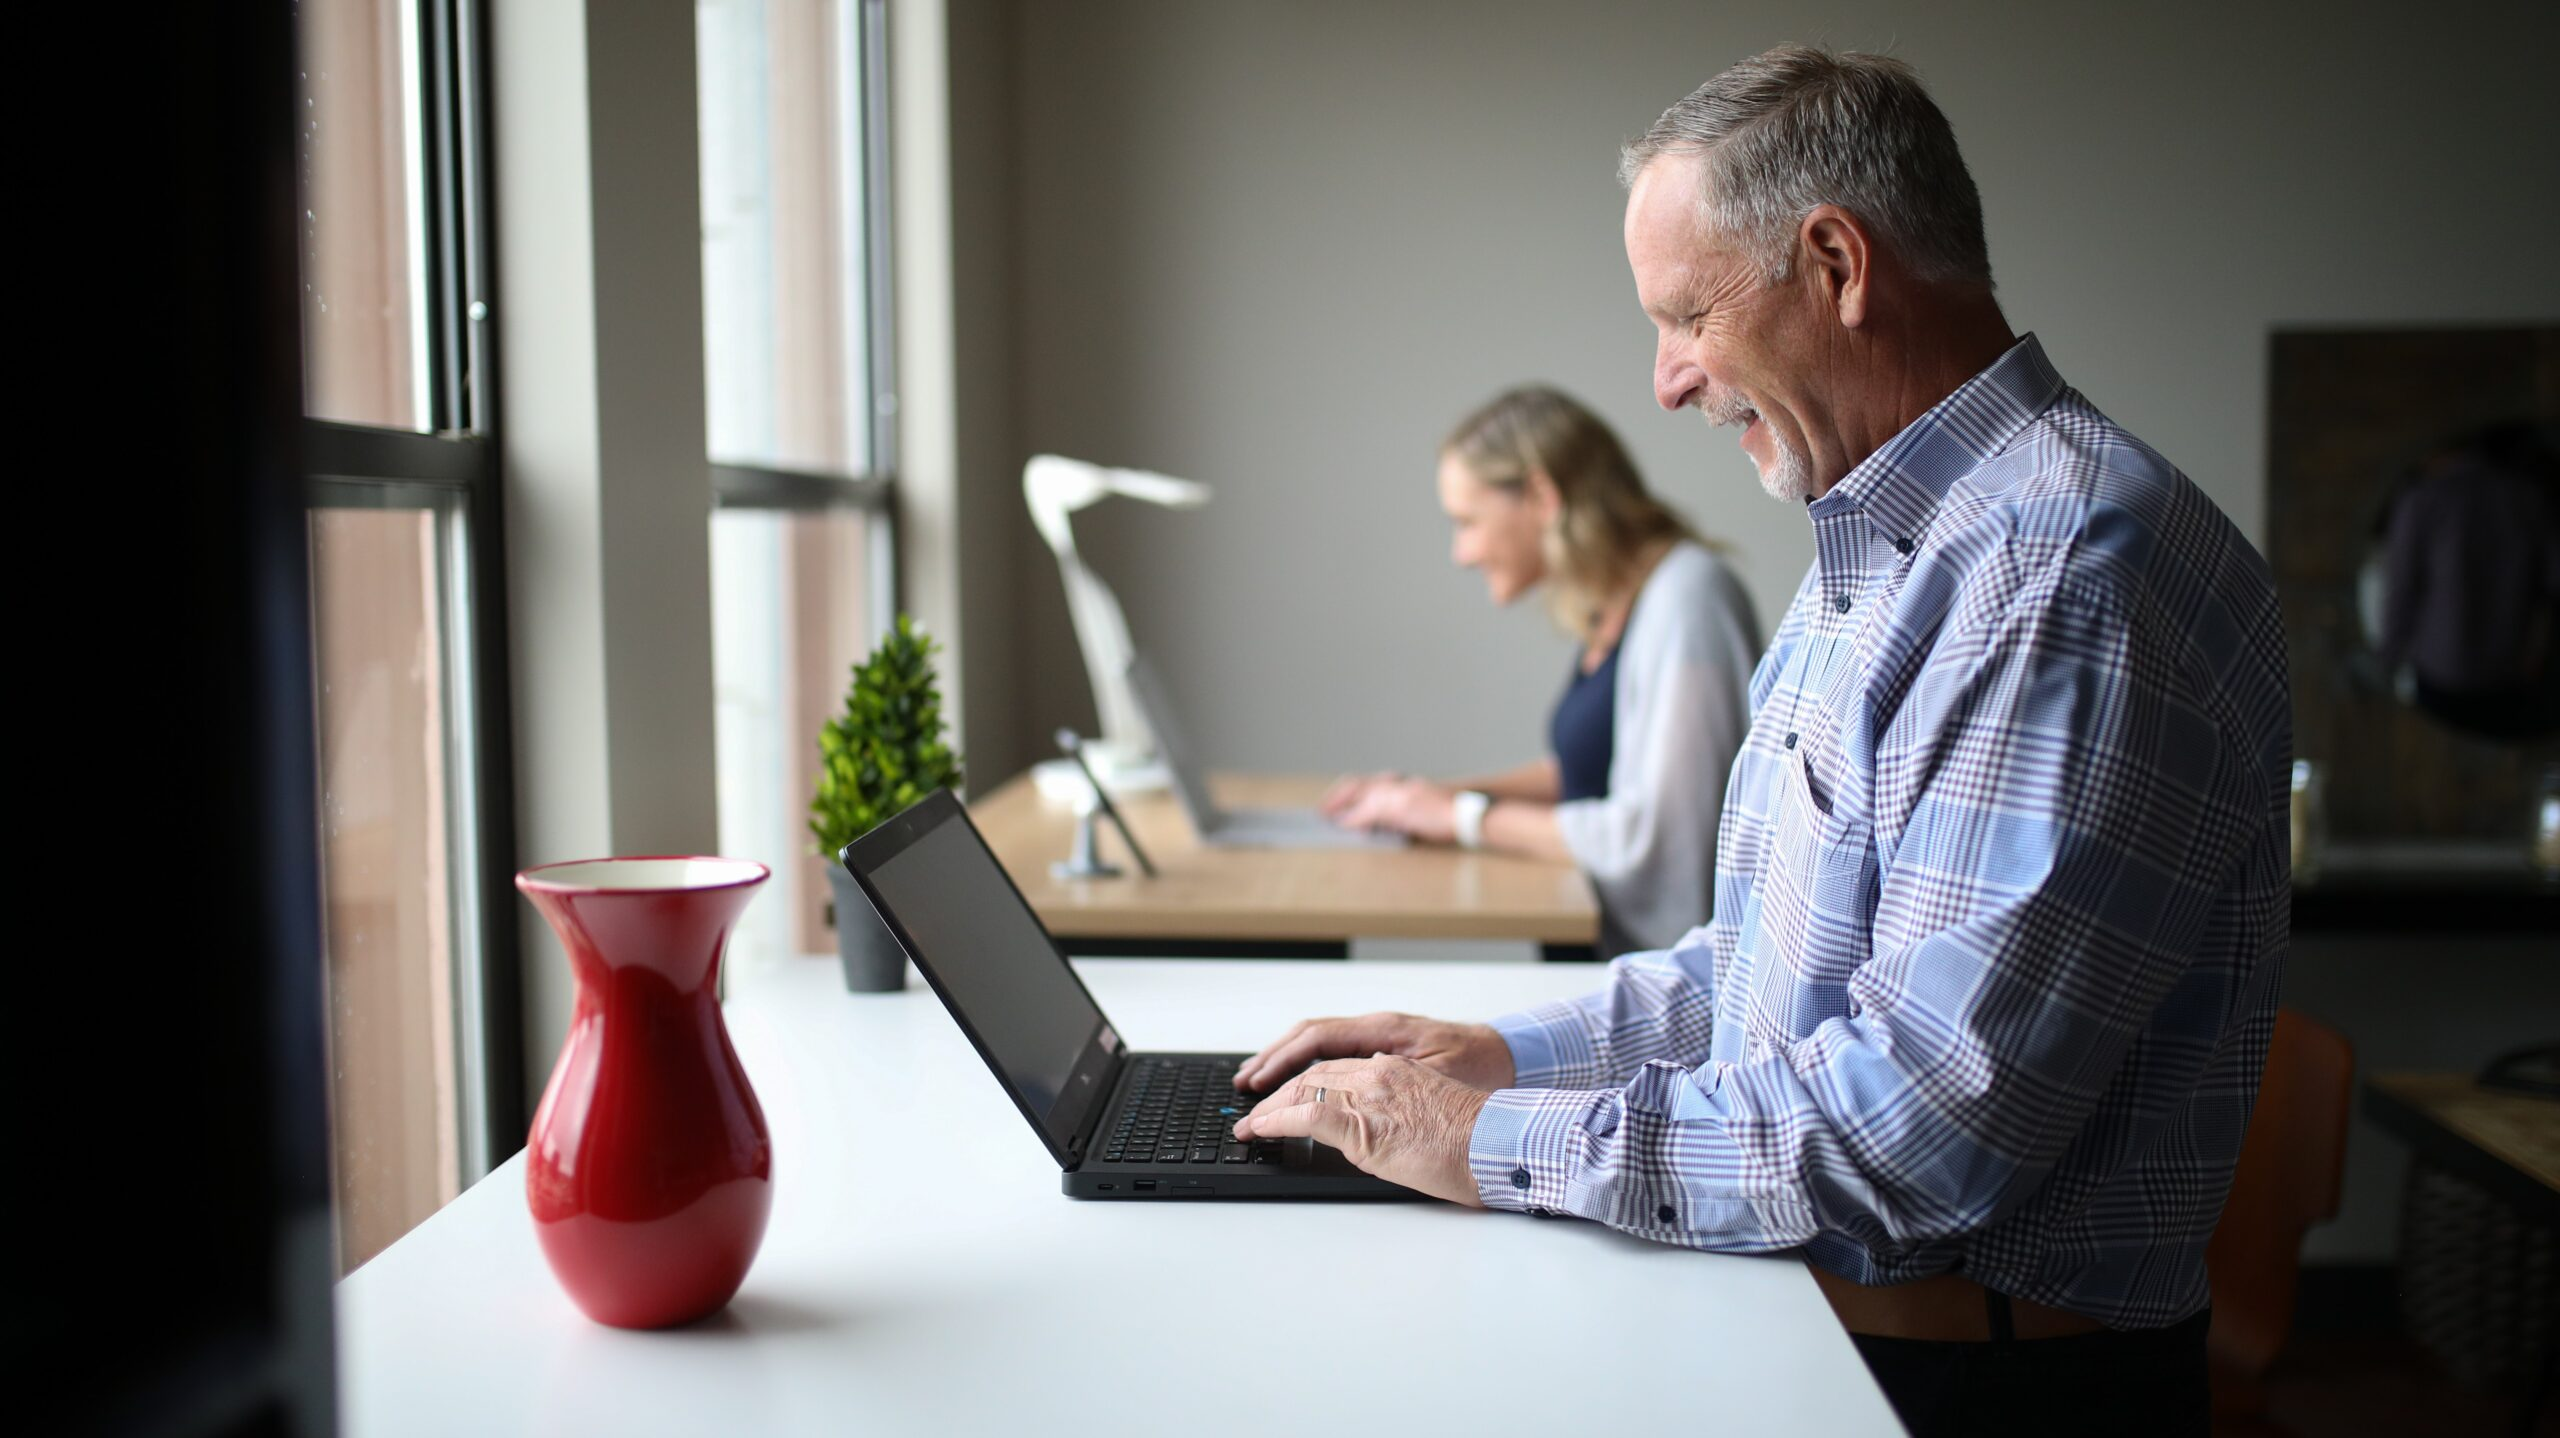 Untapped potential of skilled workforce among older employees